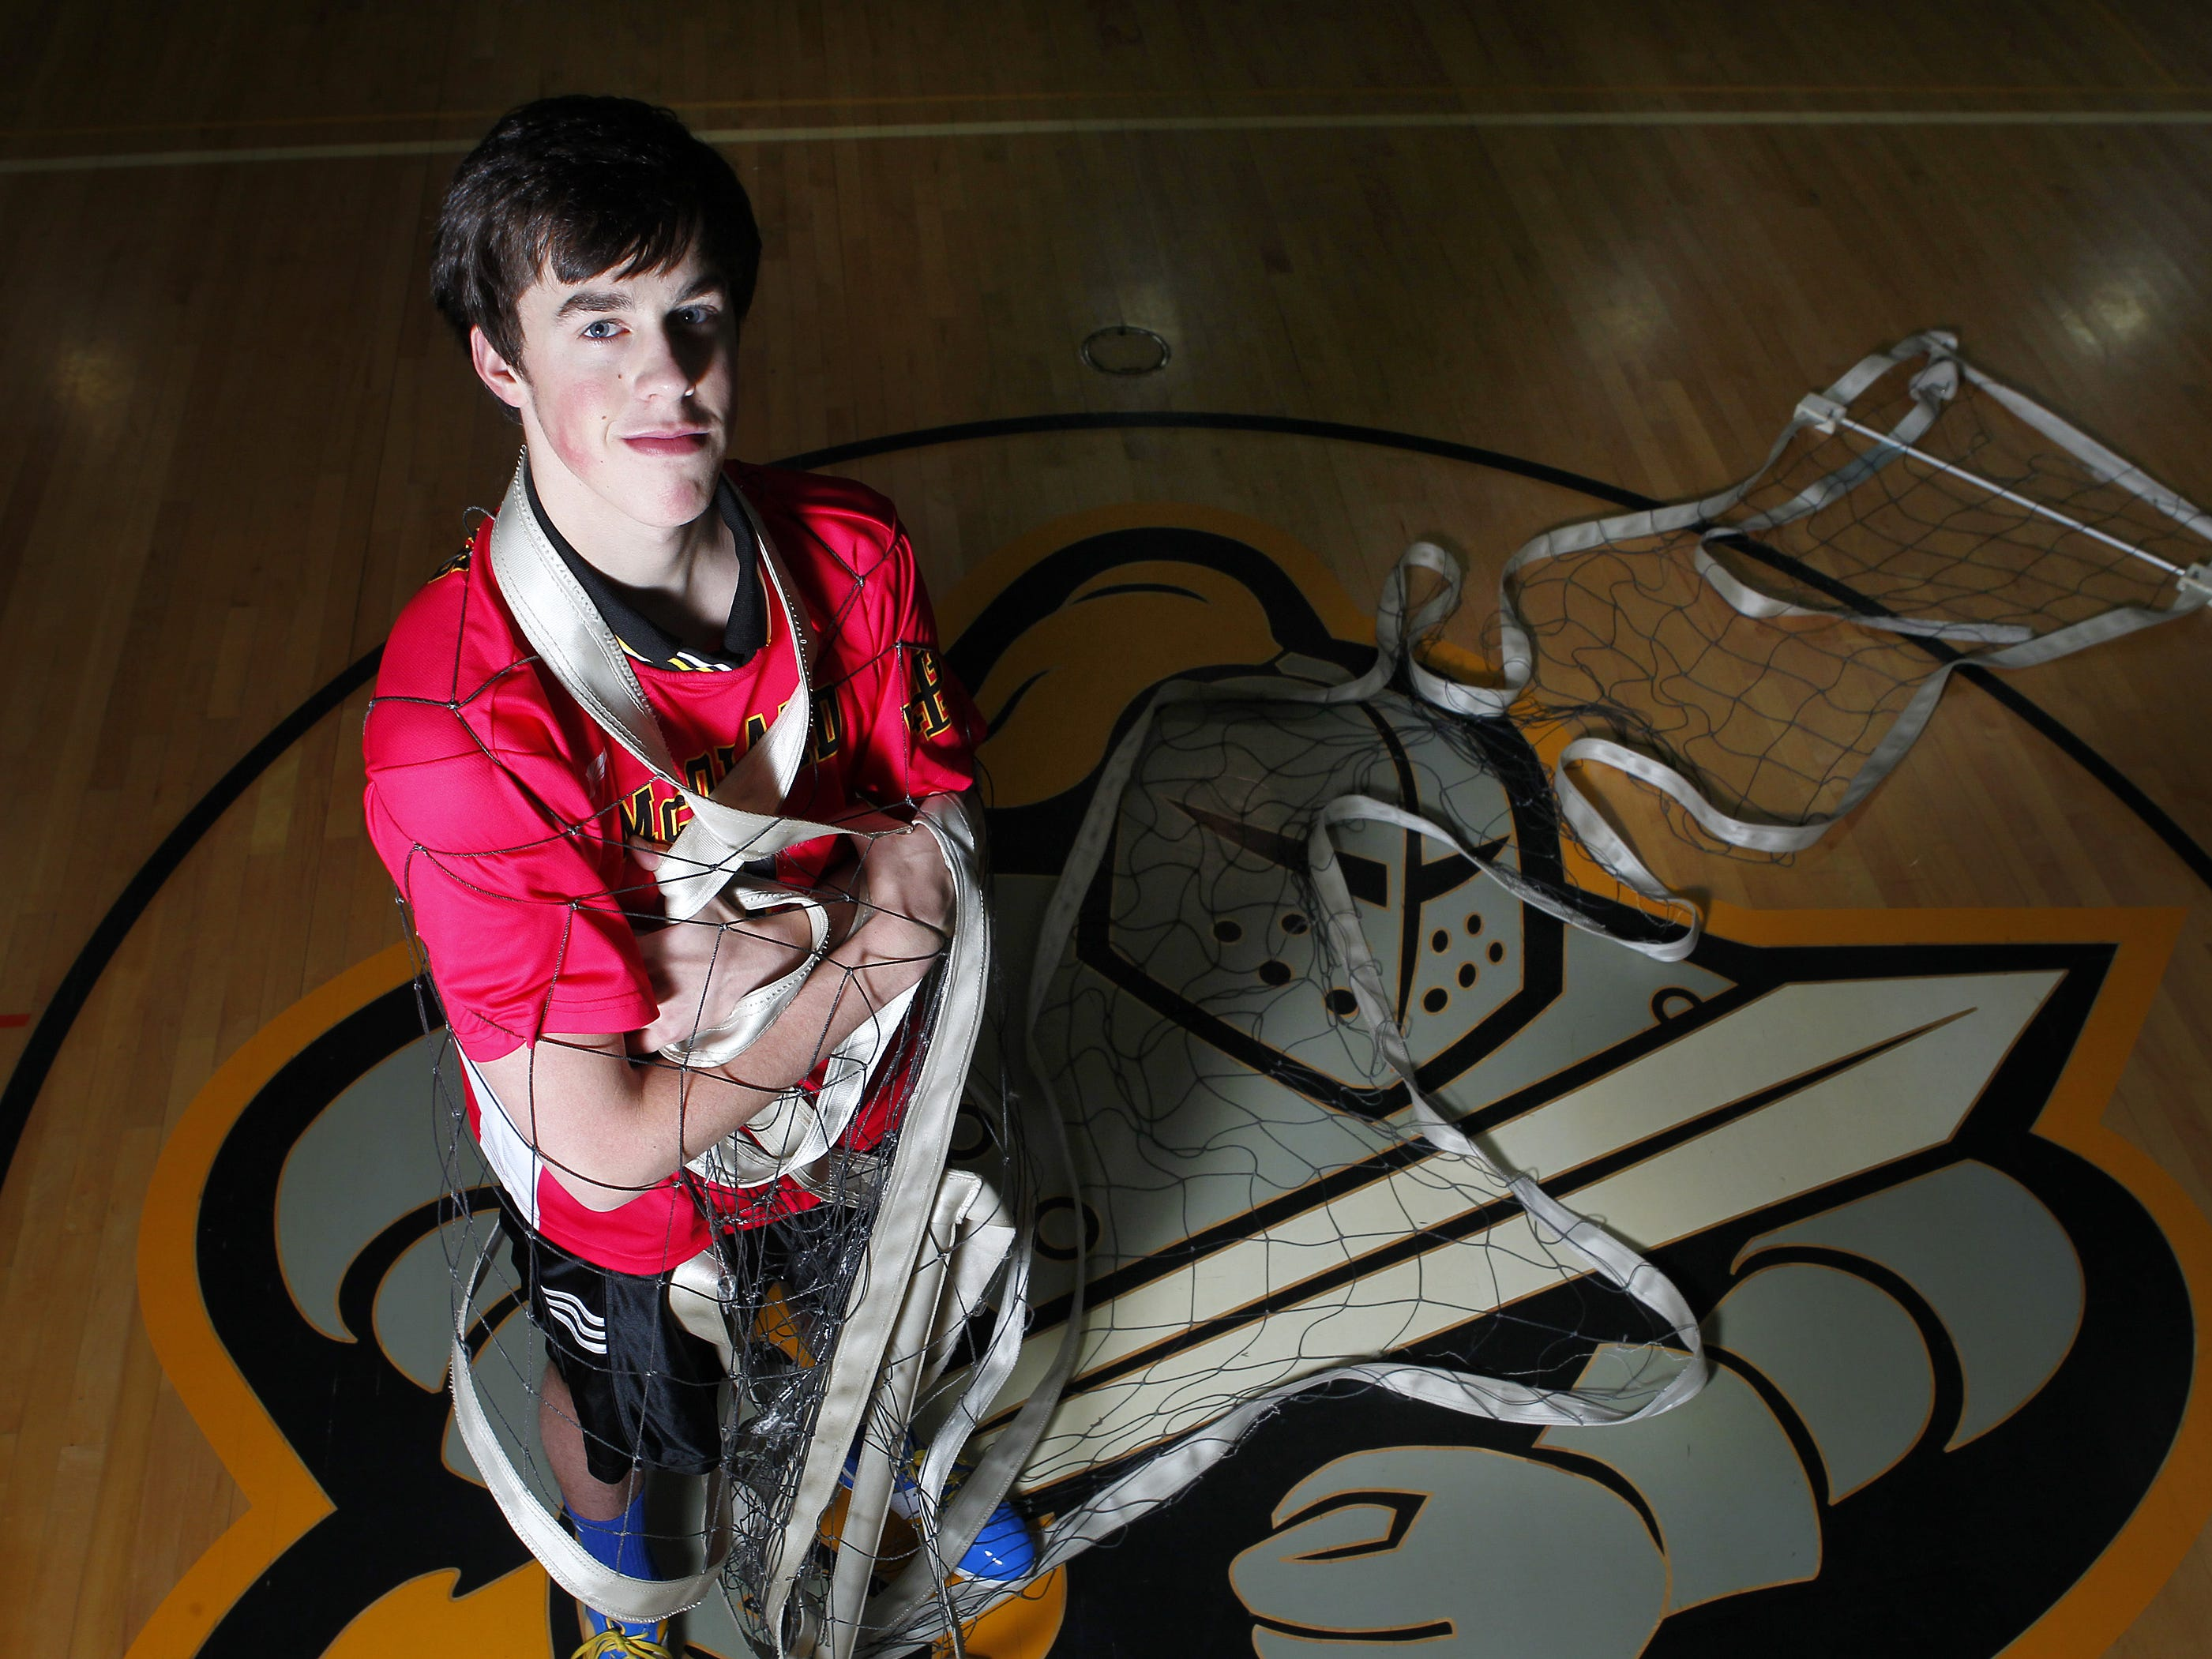 McQuaid Jesuit's Steve O'Dell was named AGR Player of the Year as the Knights won state titles in 2010 and 2011.